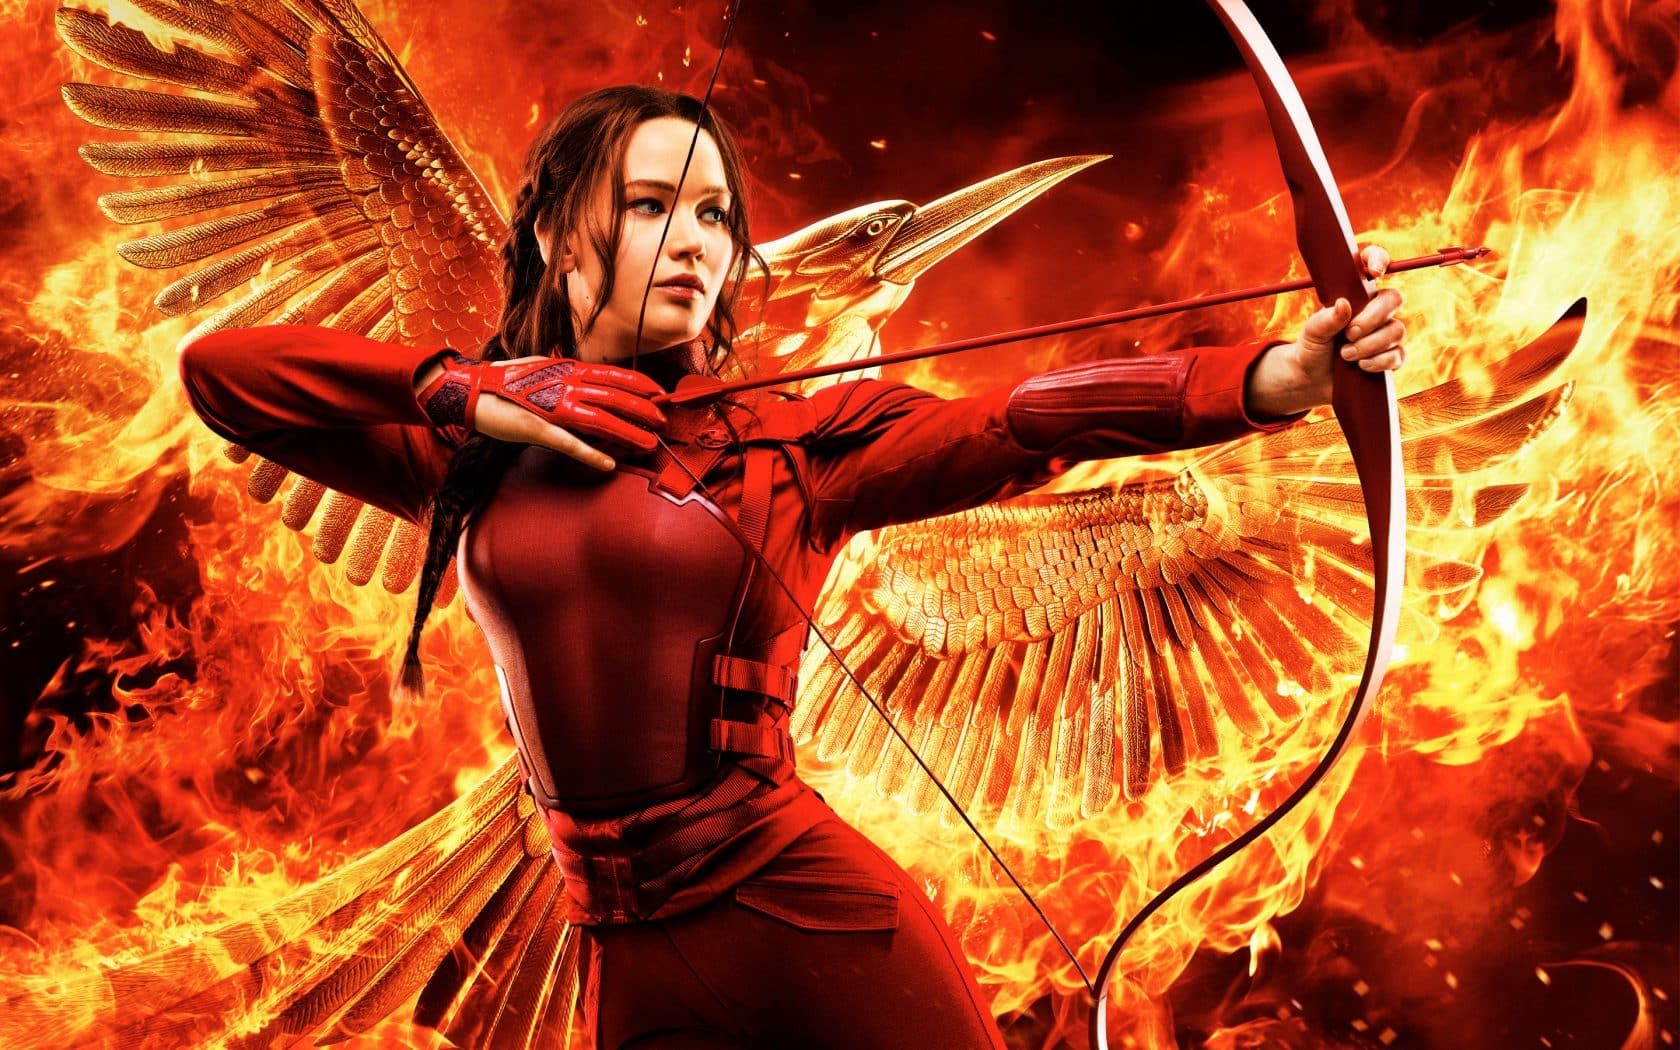 Katniss Everdeen Battle Royale Featured Image